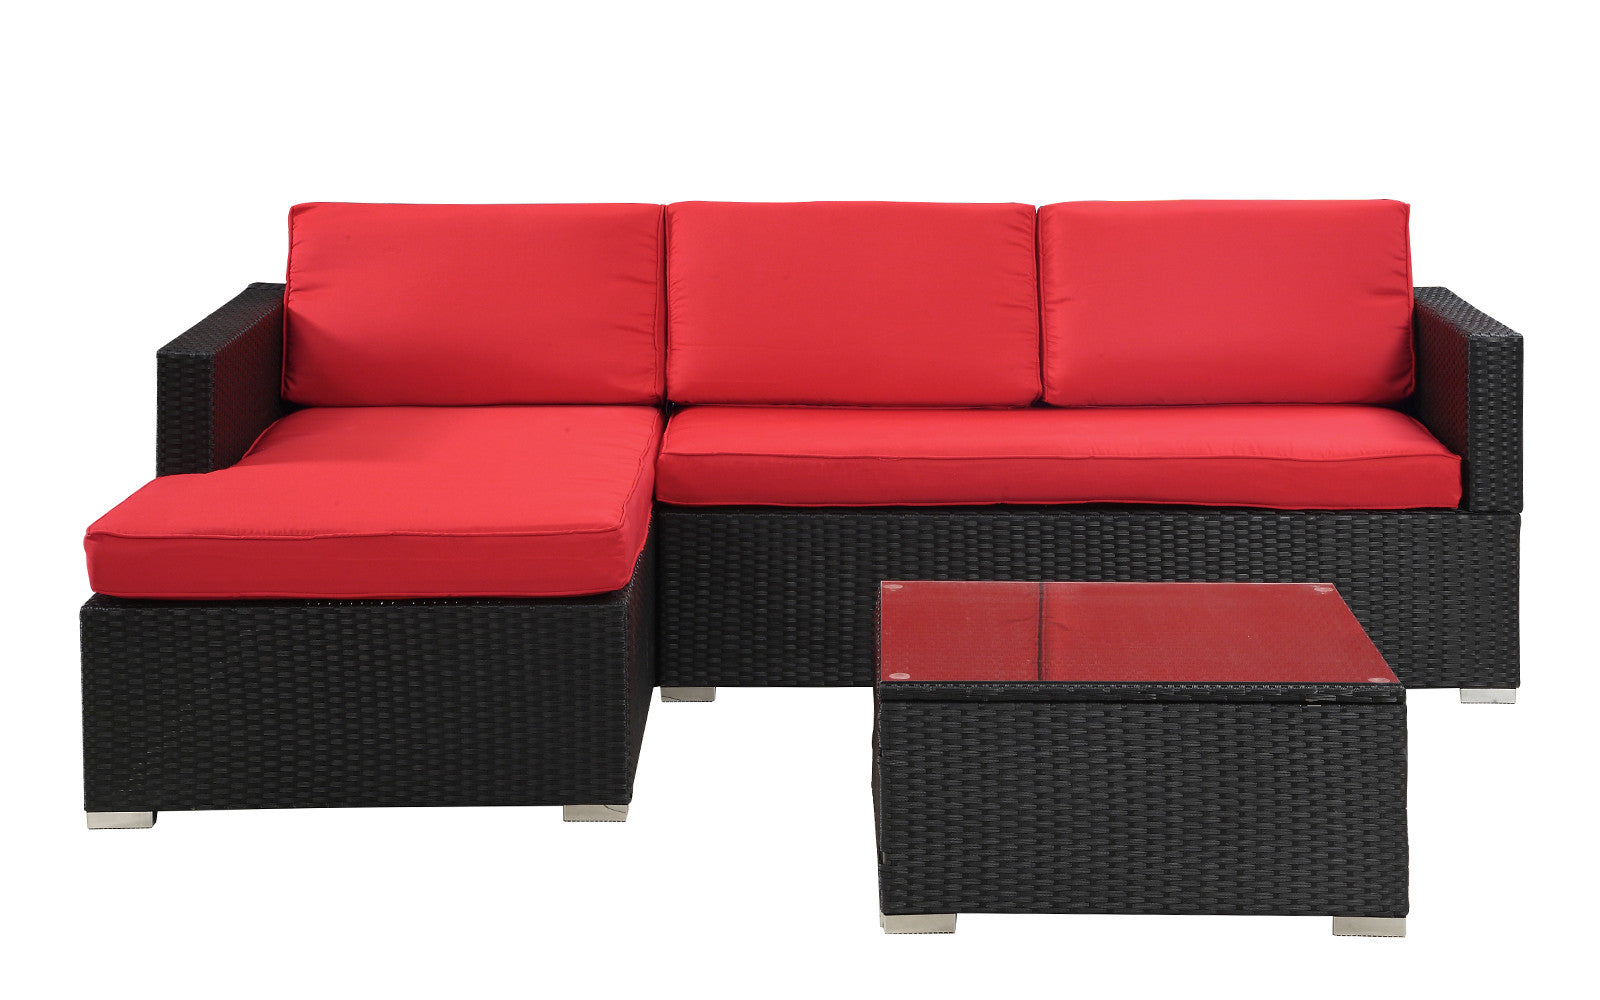 ... Hilo Modern Outdoor Sectional With Coffee Table In Red And Black ...